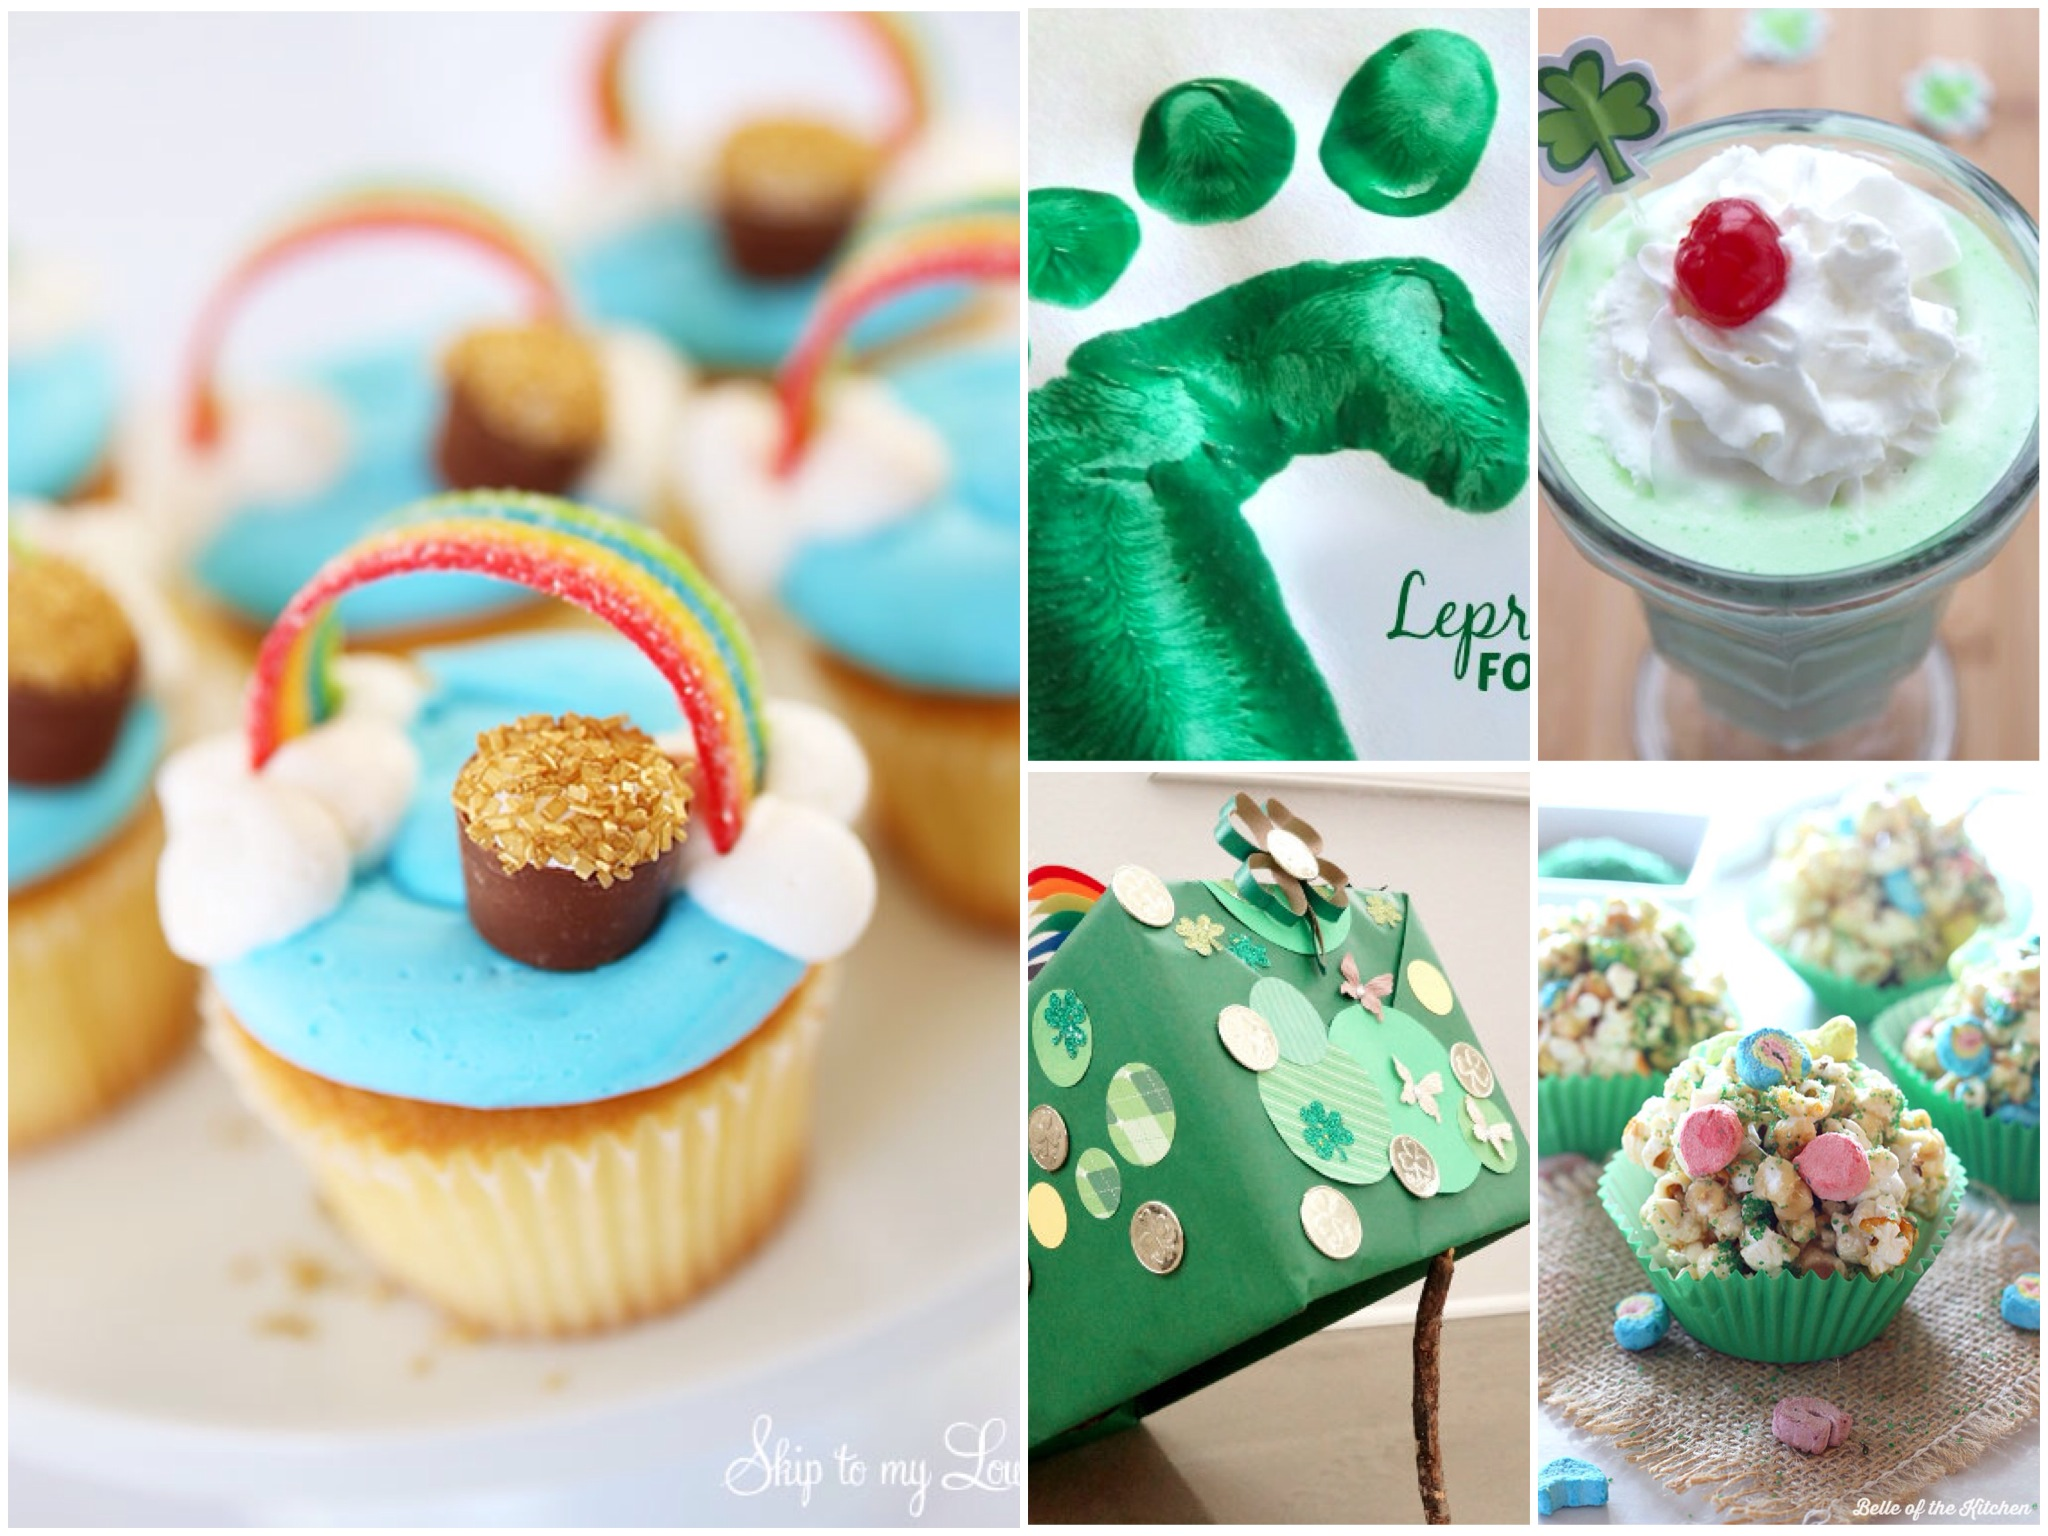 12 leprechaun treats tricks and traps for st patrick u0027s day